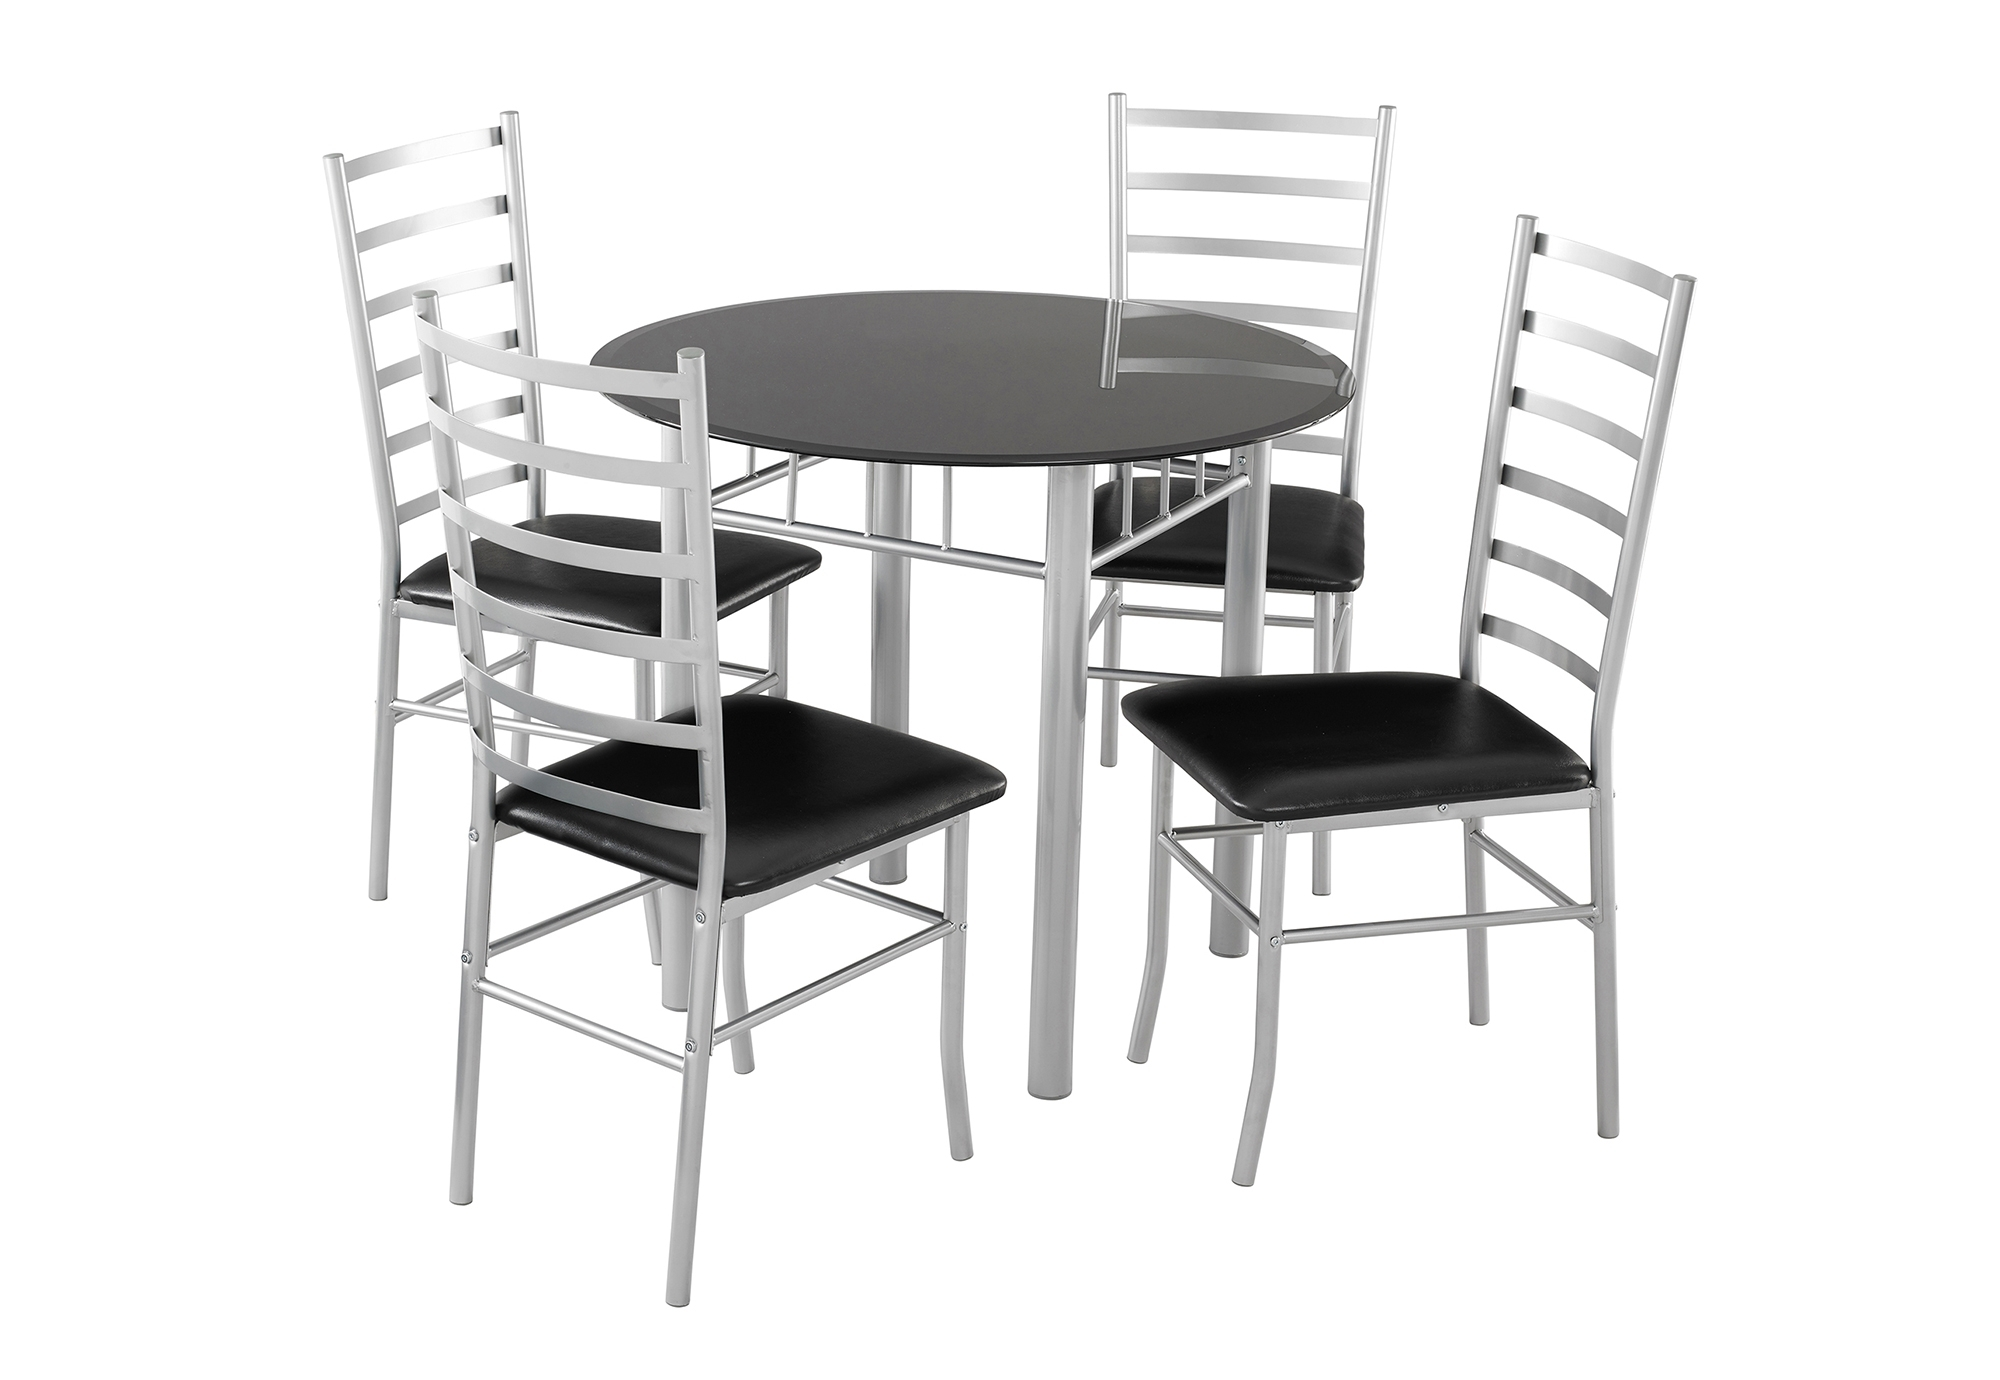 2017 Glass Dining Tables Regarding Lincoln Dining Set 4 Seater – Black Glass Dining Table & 4 Chairs (Gallery 12 of 25)